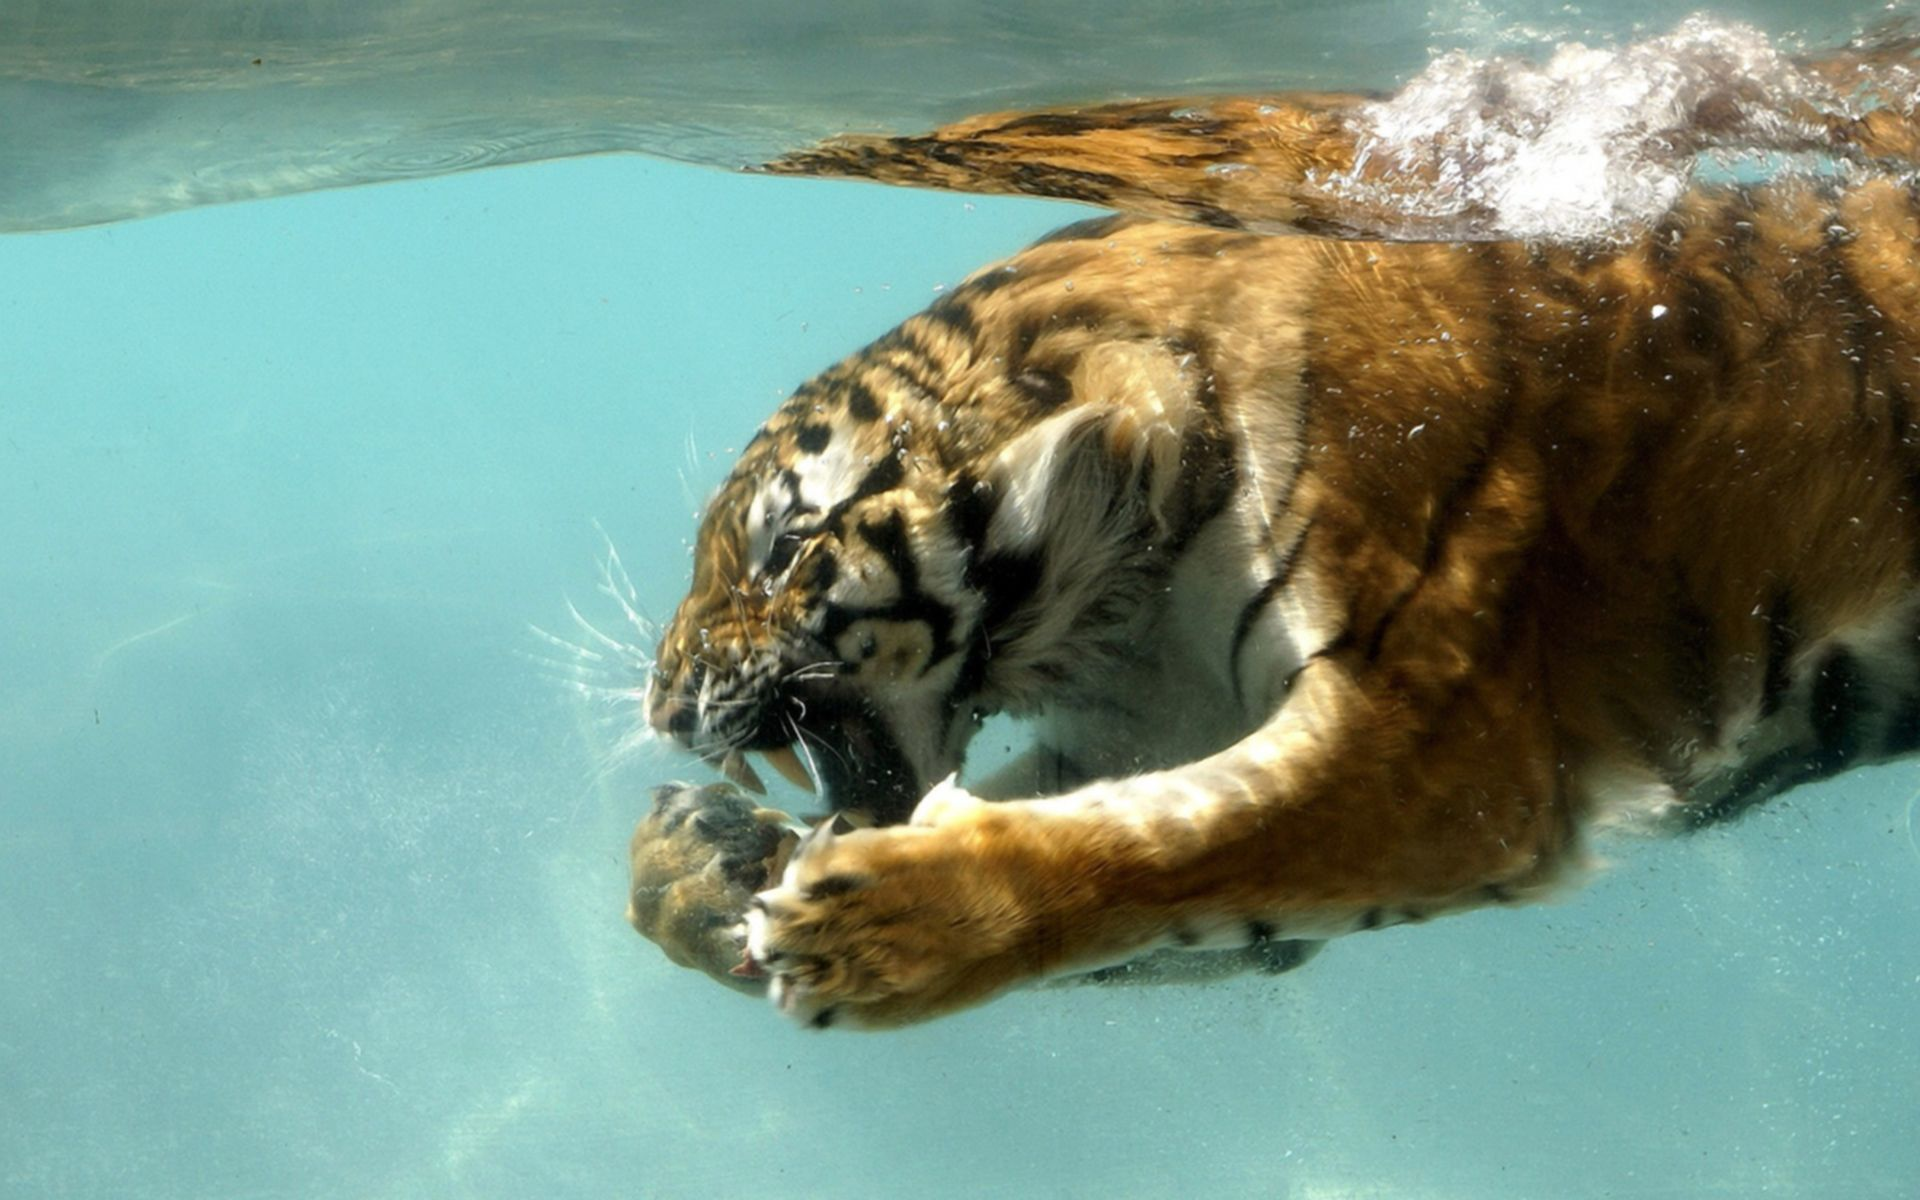 Wallpapers Wallpaper Backgrounds Tiger Animal Water Tiger In Water Pet Tiger Tiger Pictures